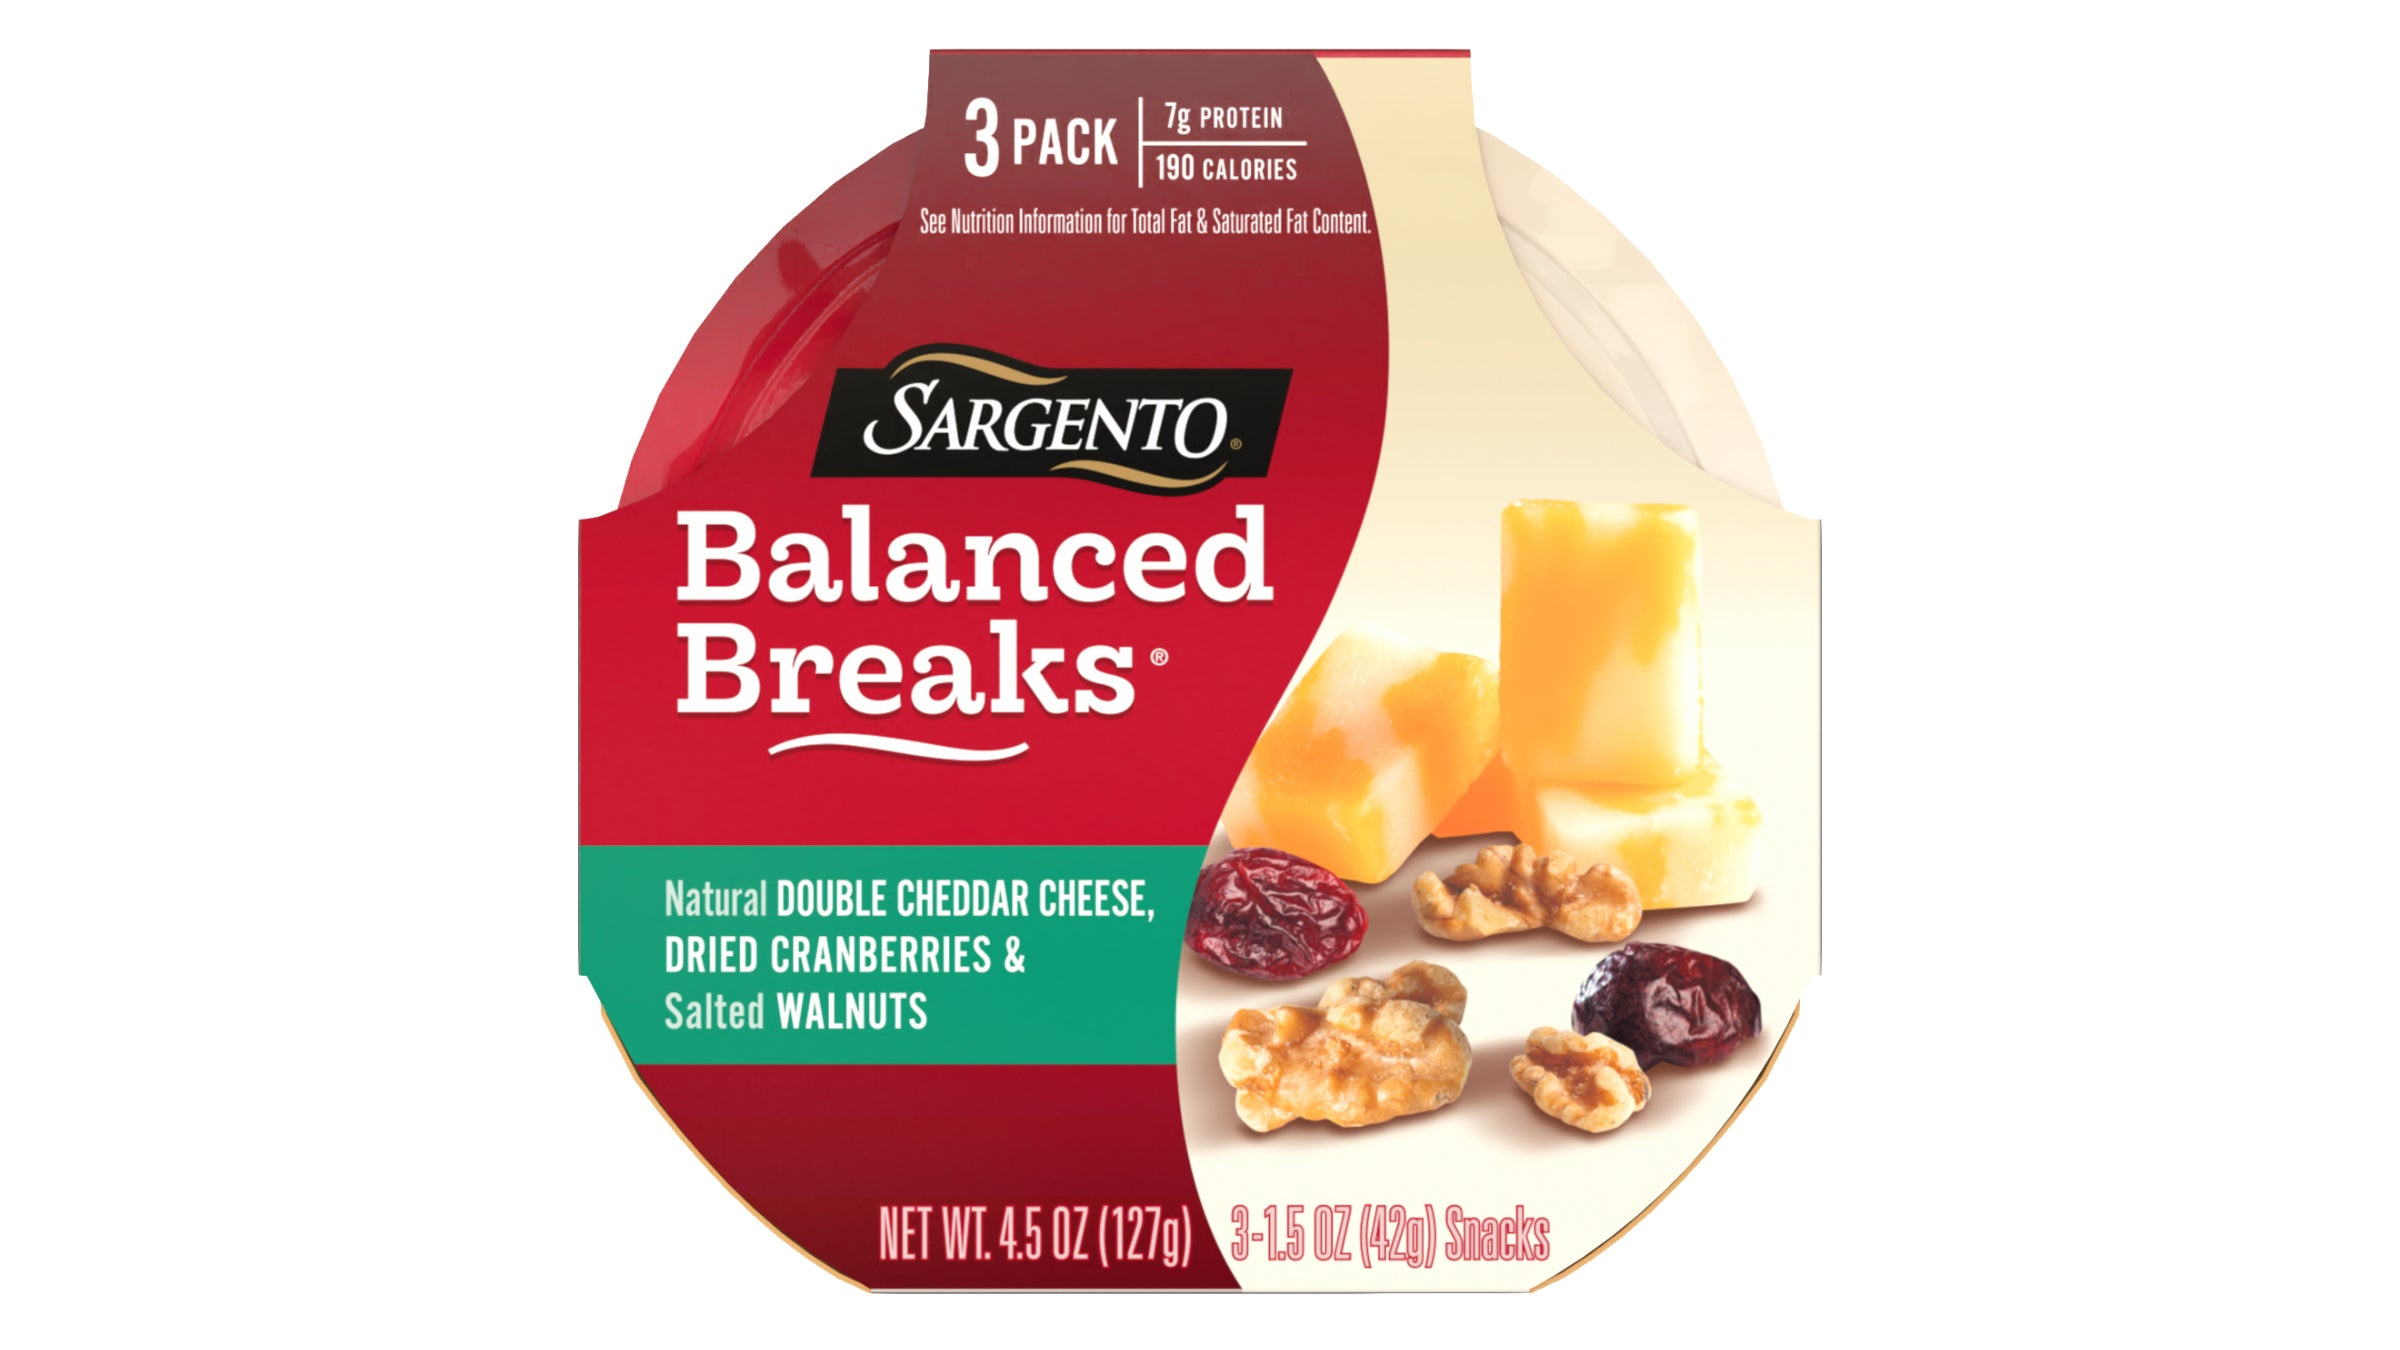 Sargento Balanced Breaks Cheddar Cranberries and Walnuts